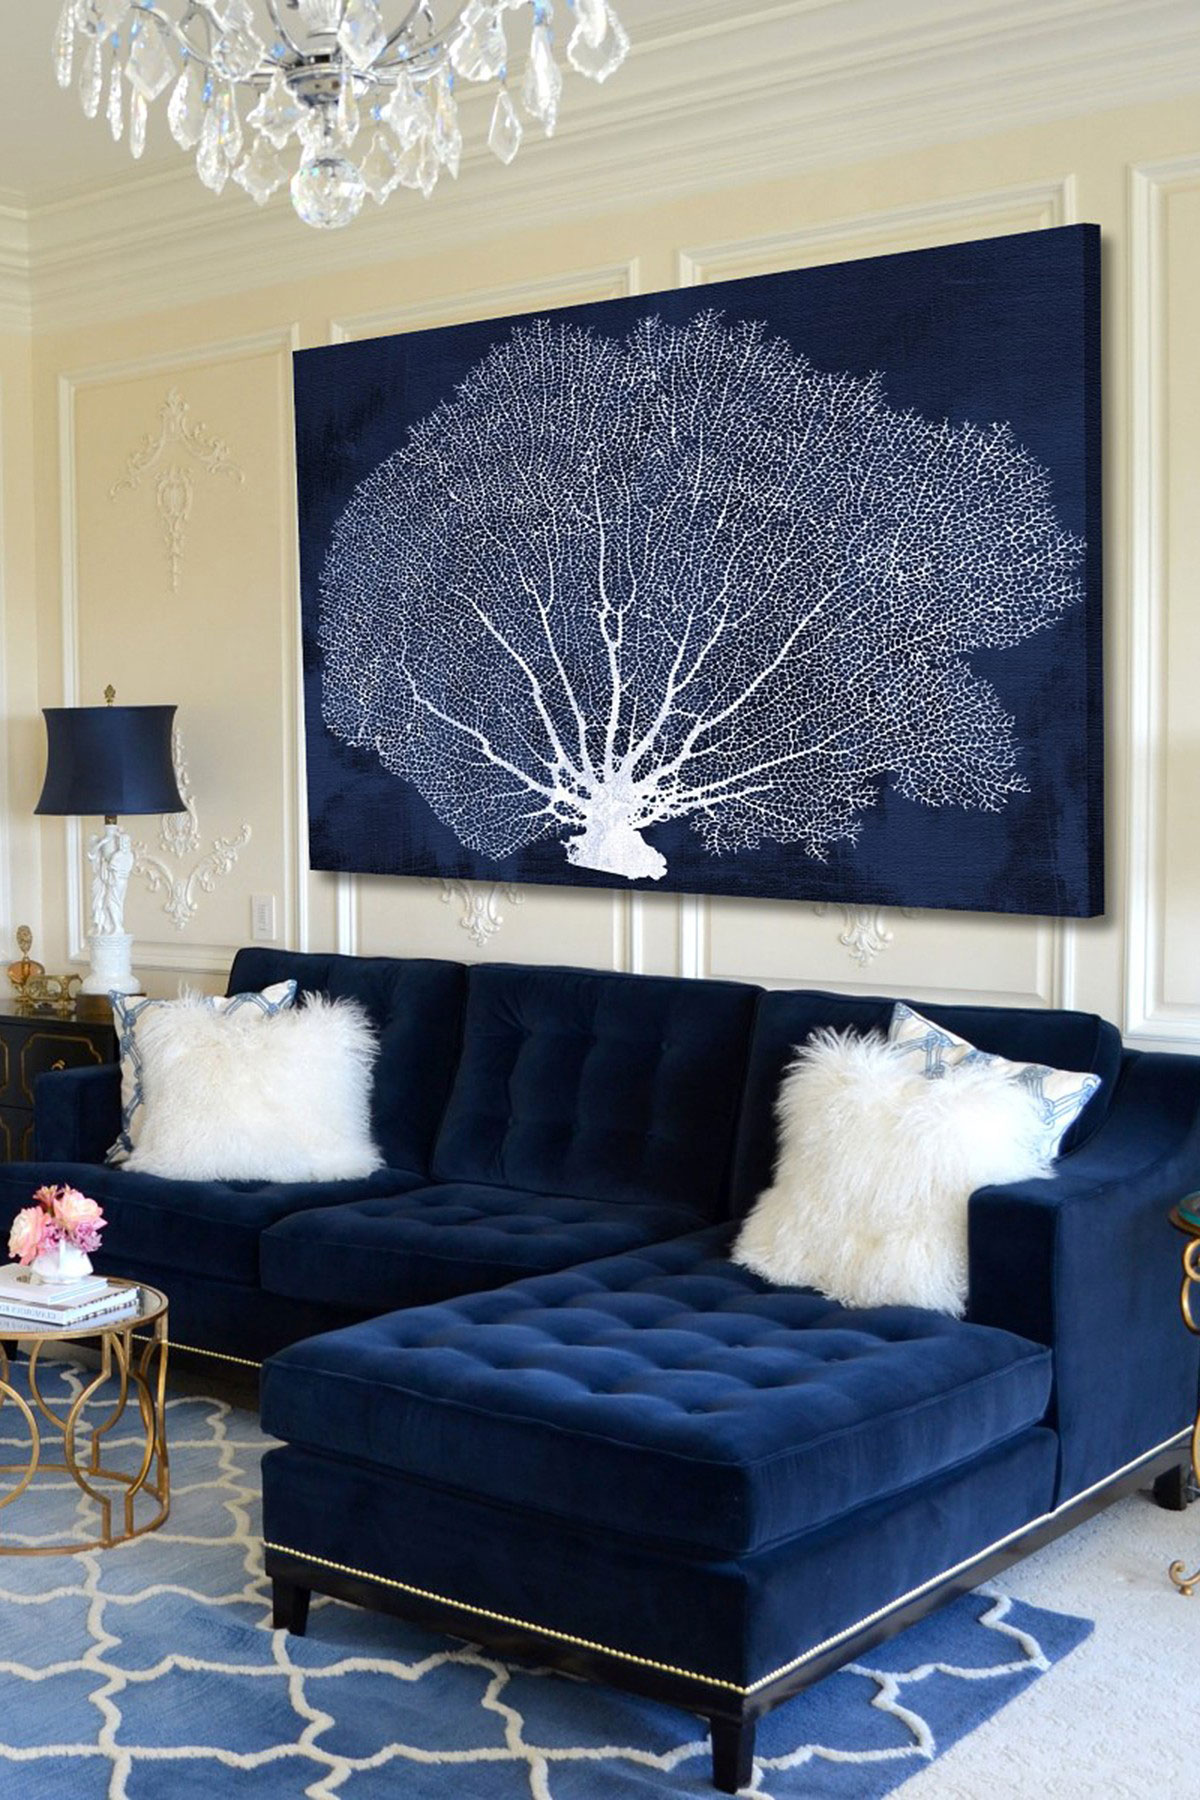 Ordinaire Navy Blue Living Room Design